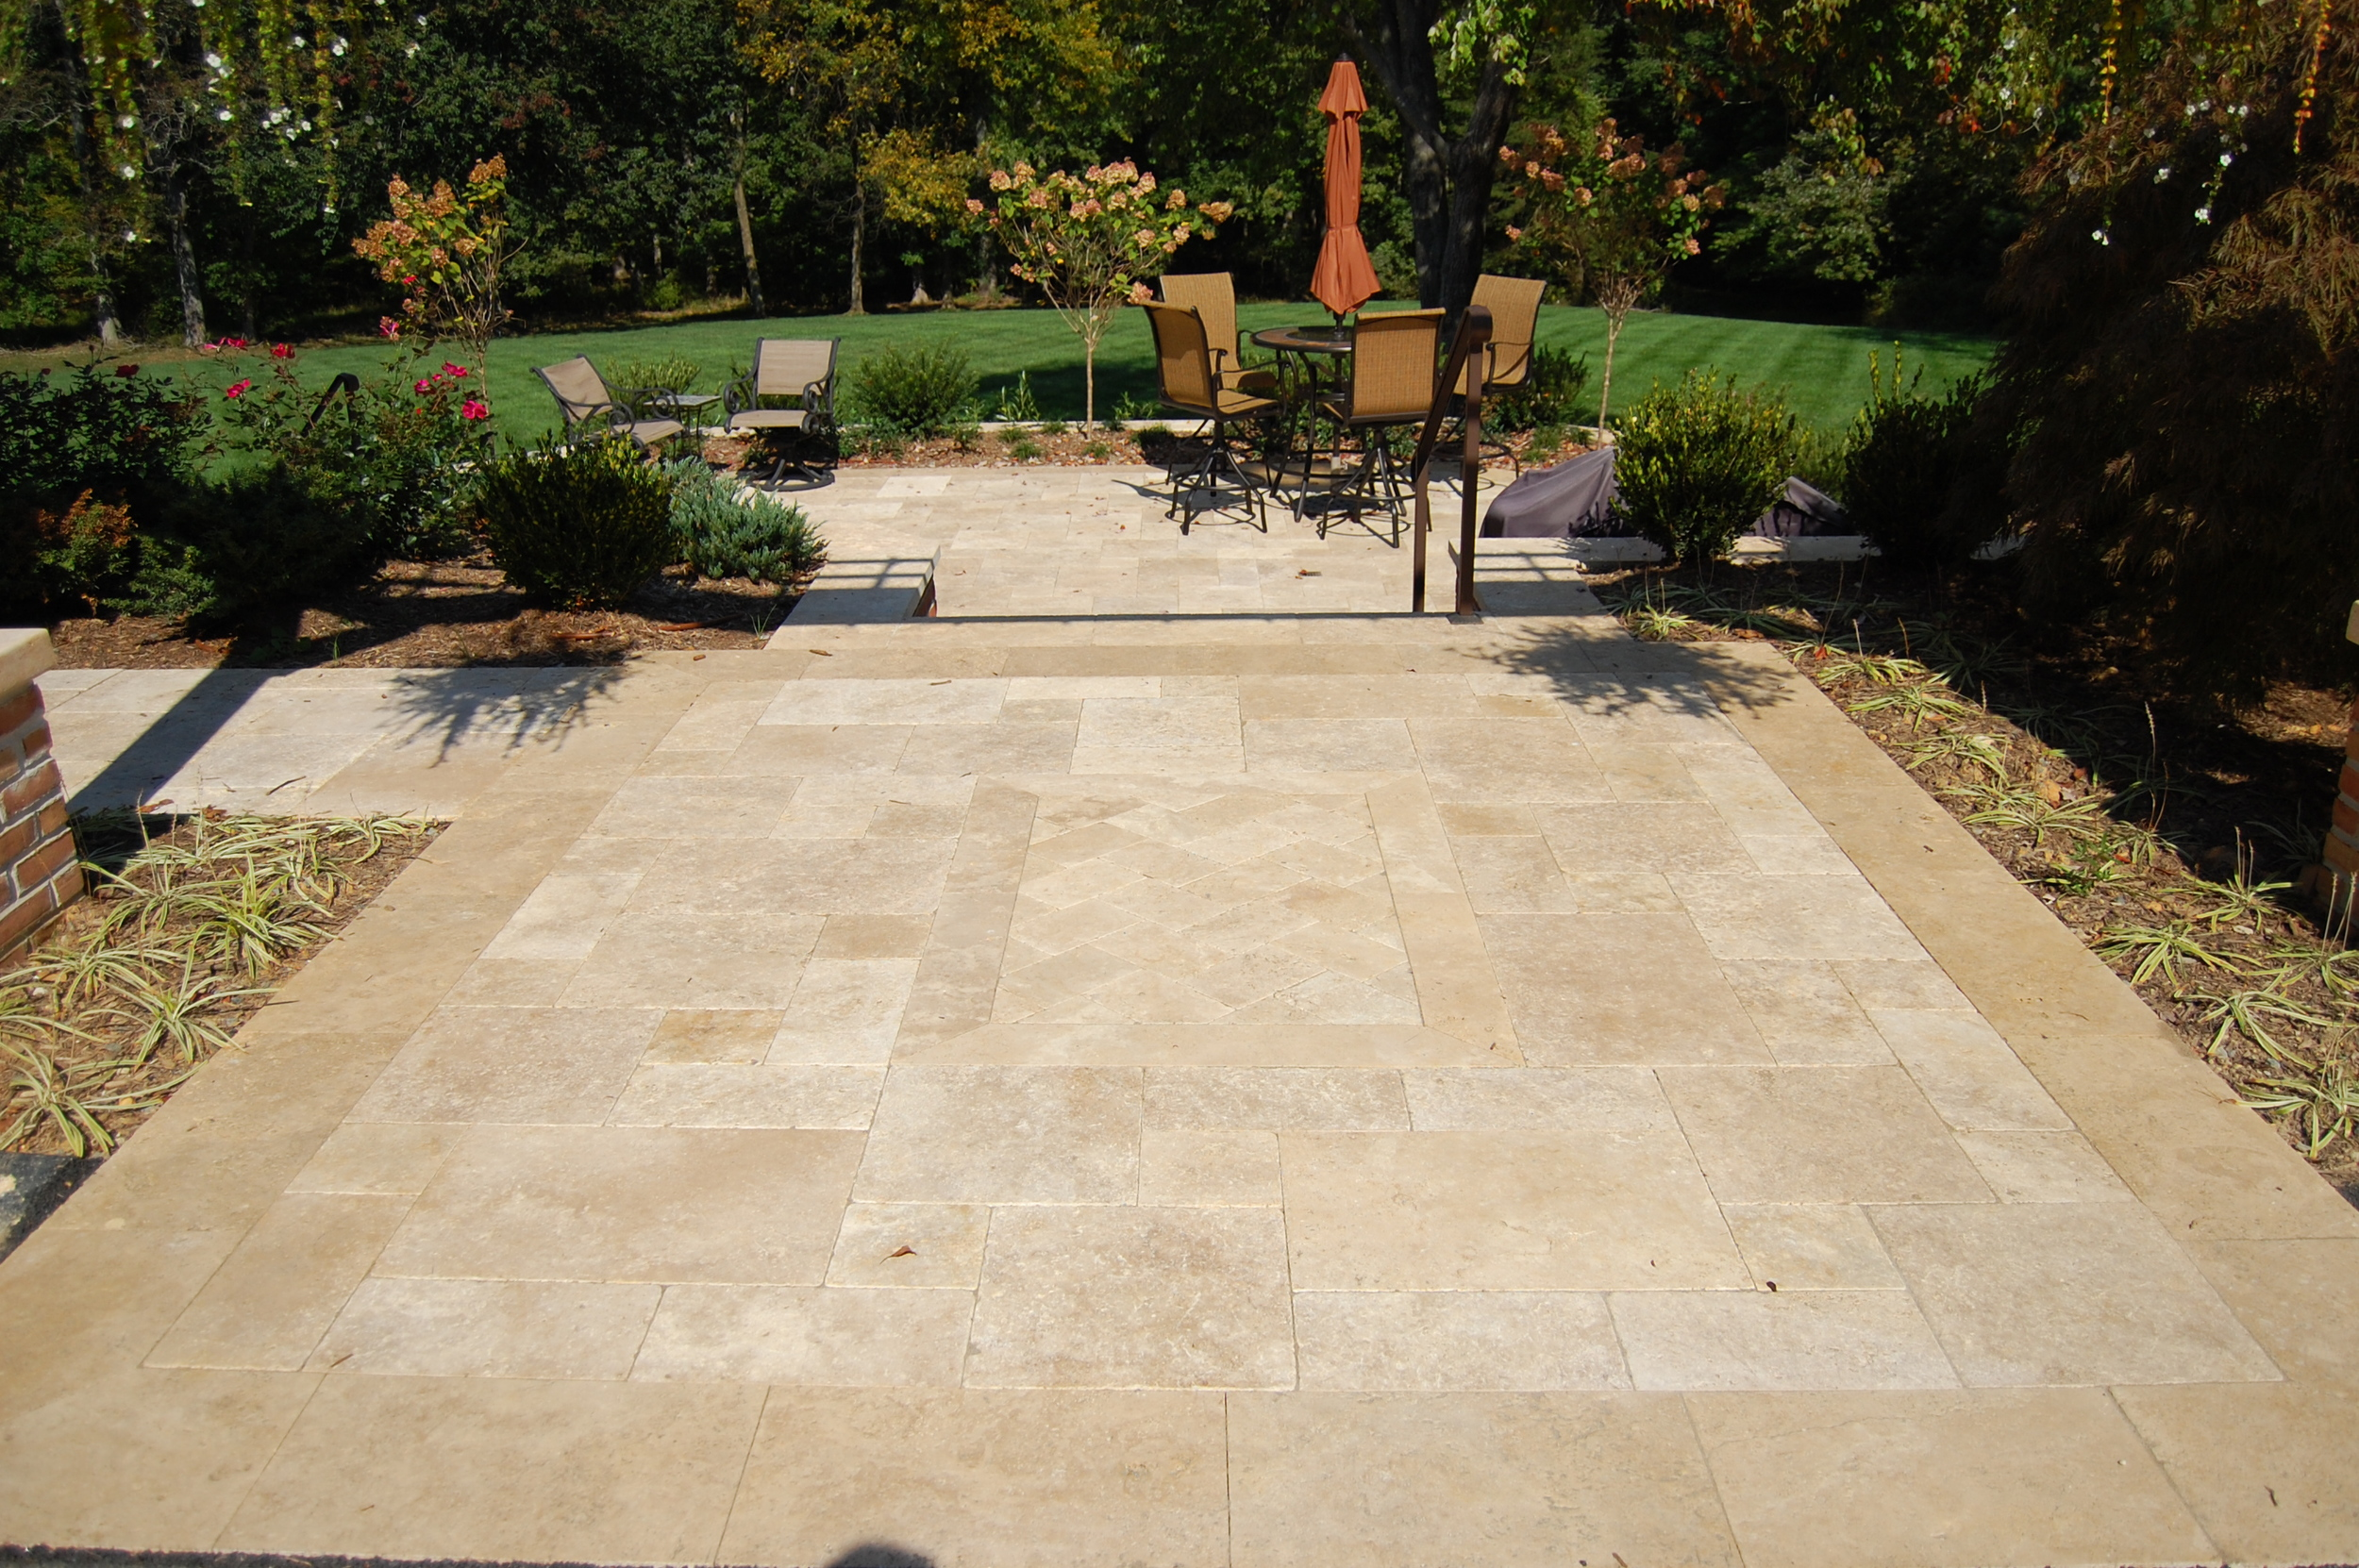 Travertine terraces and landings create extra space and a gradual step down from the second story deck.